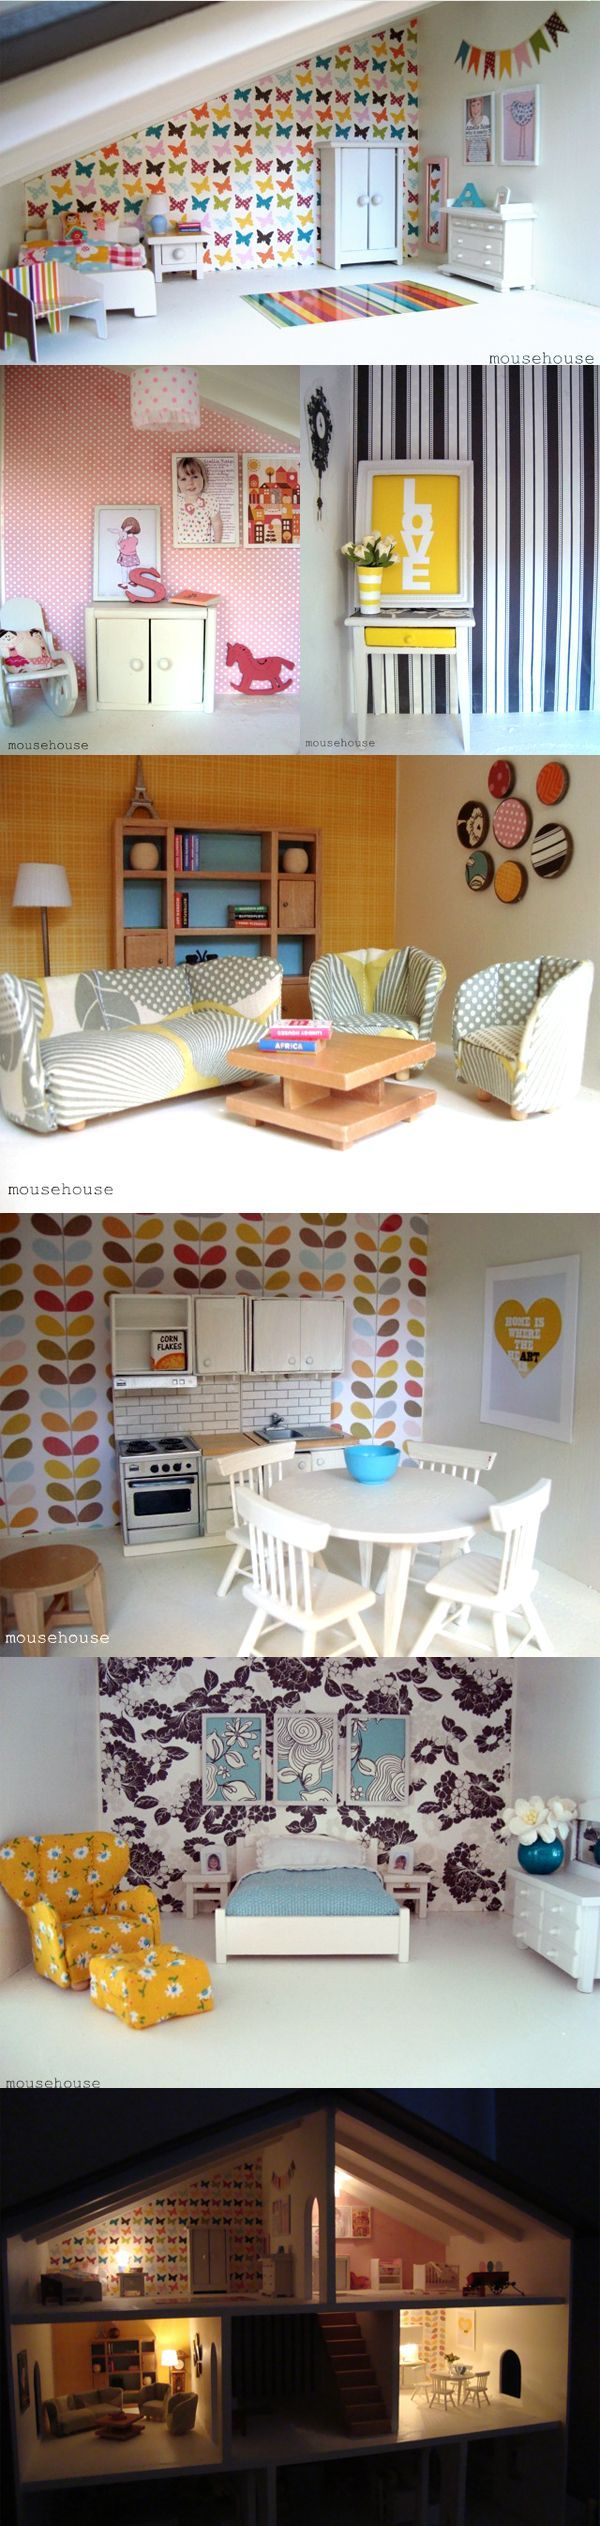 8 best barbie images on pinterest doll dollhouse ideas and